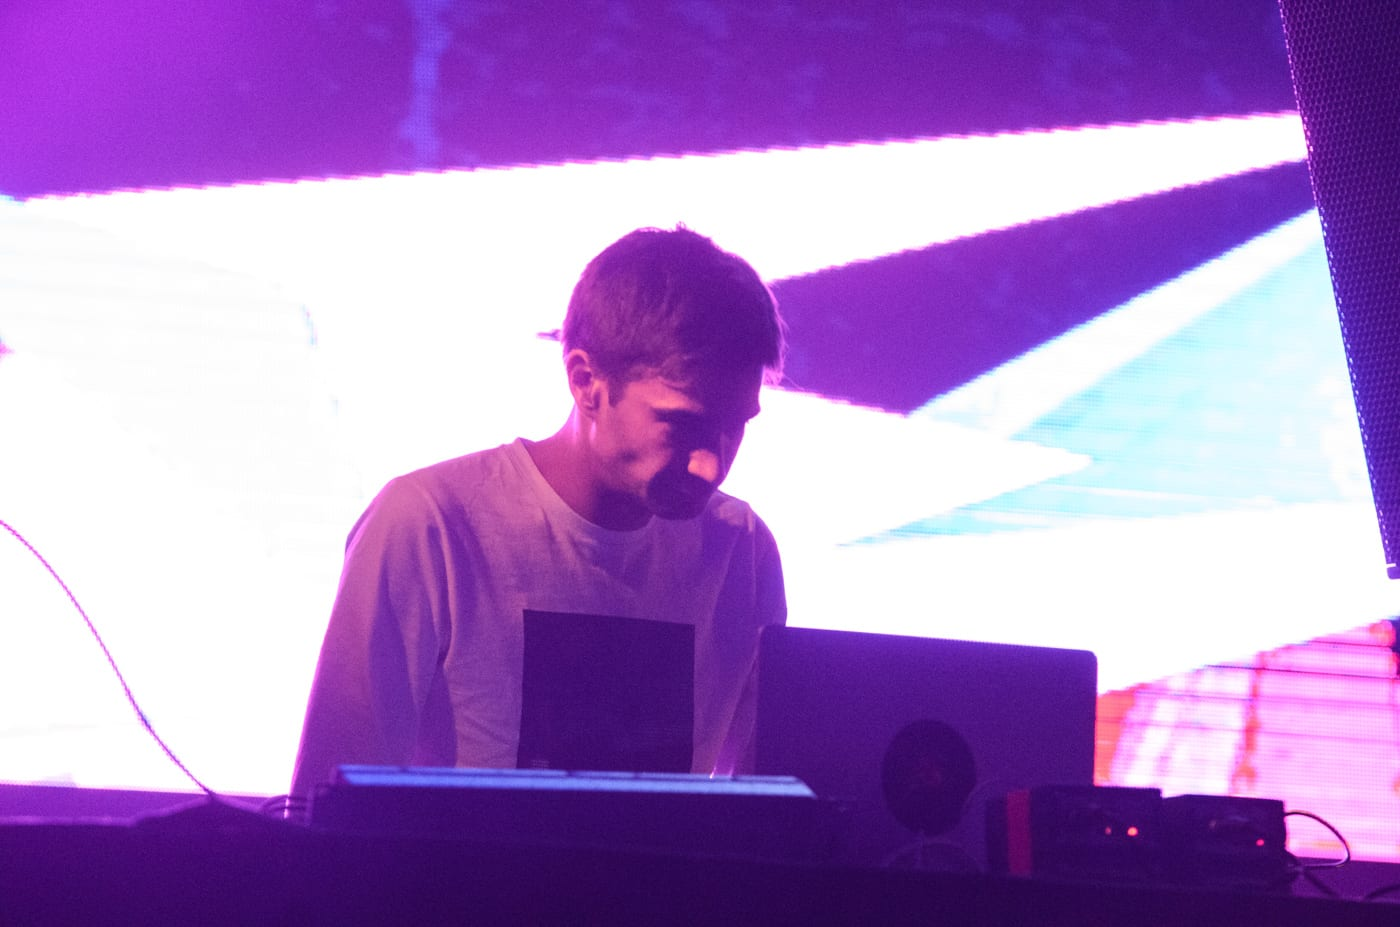 winterparty-at-3arena-dublin-30-10-2016-by-sean-smyth-1-of-53